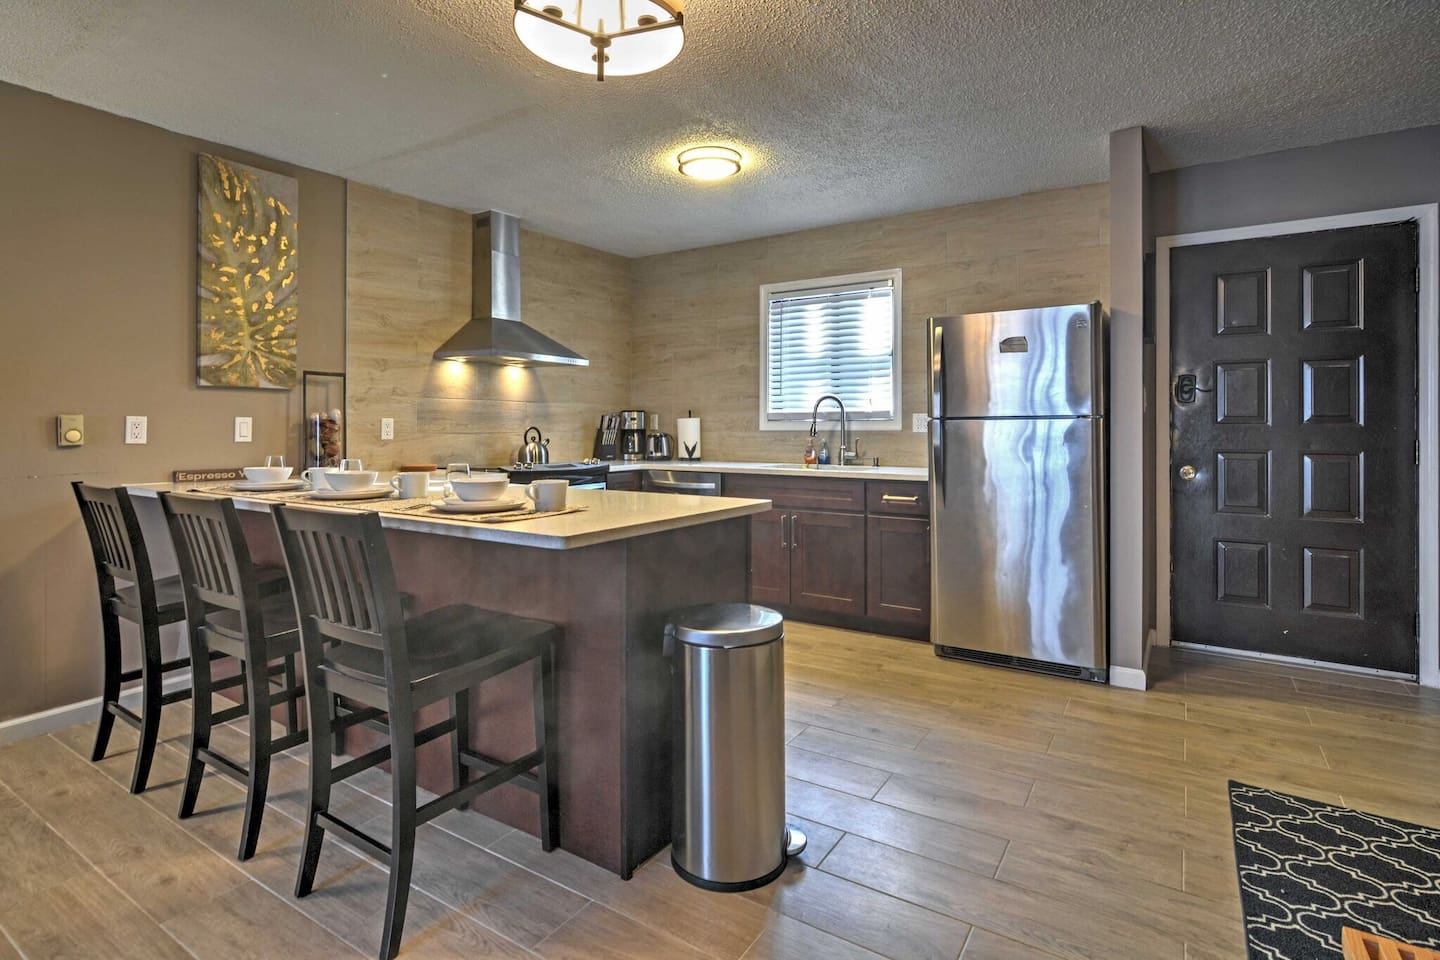 Open Spaced U Shaped Kitchen to enjoy cooking delicious meals in the updated kitchen, fully equipped with stainless steel appliances and all the necessary kitchen accessories.